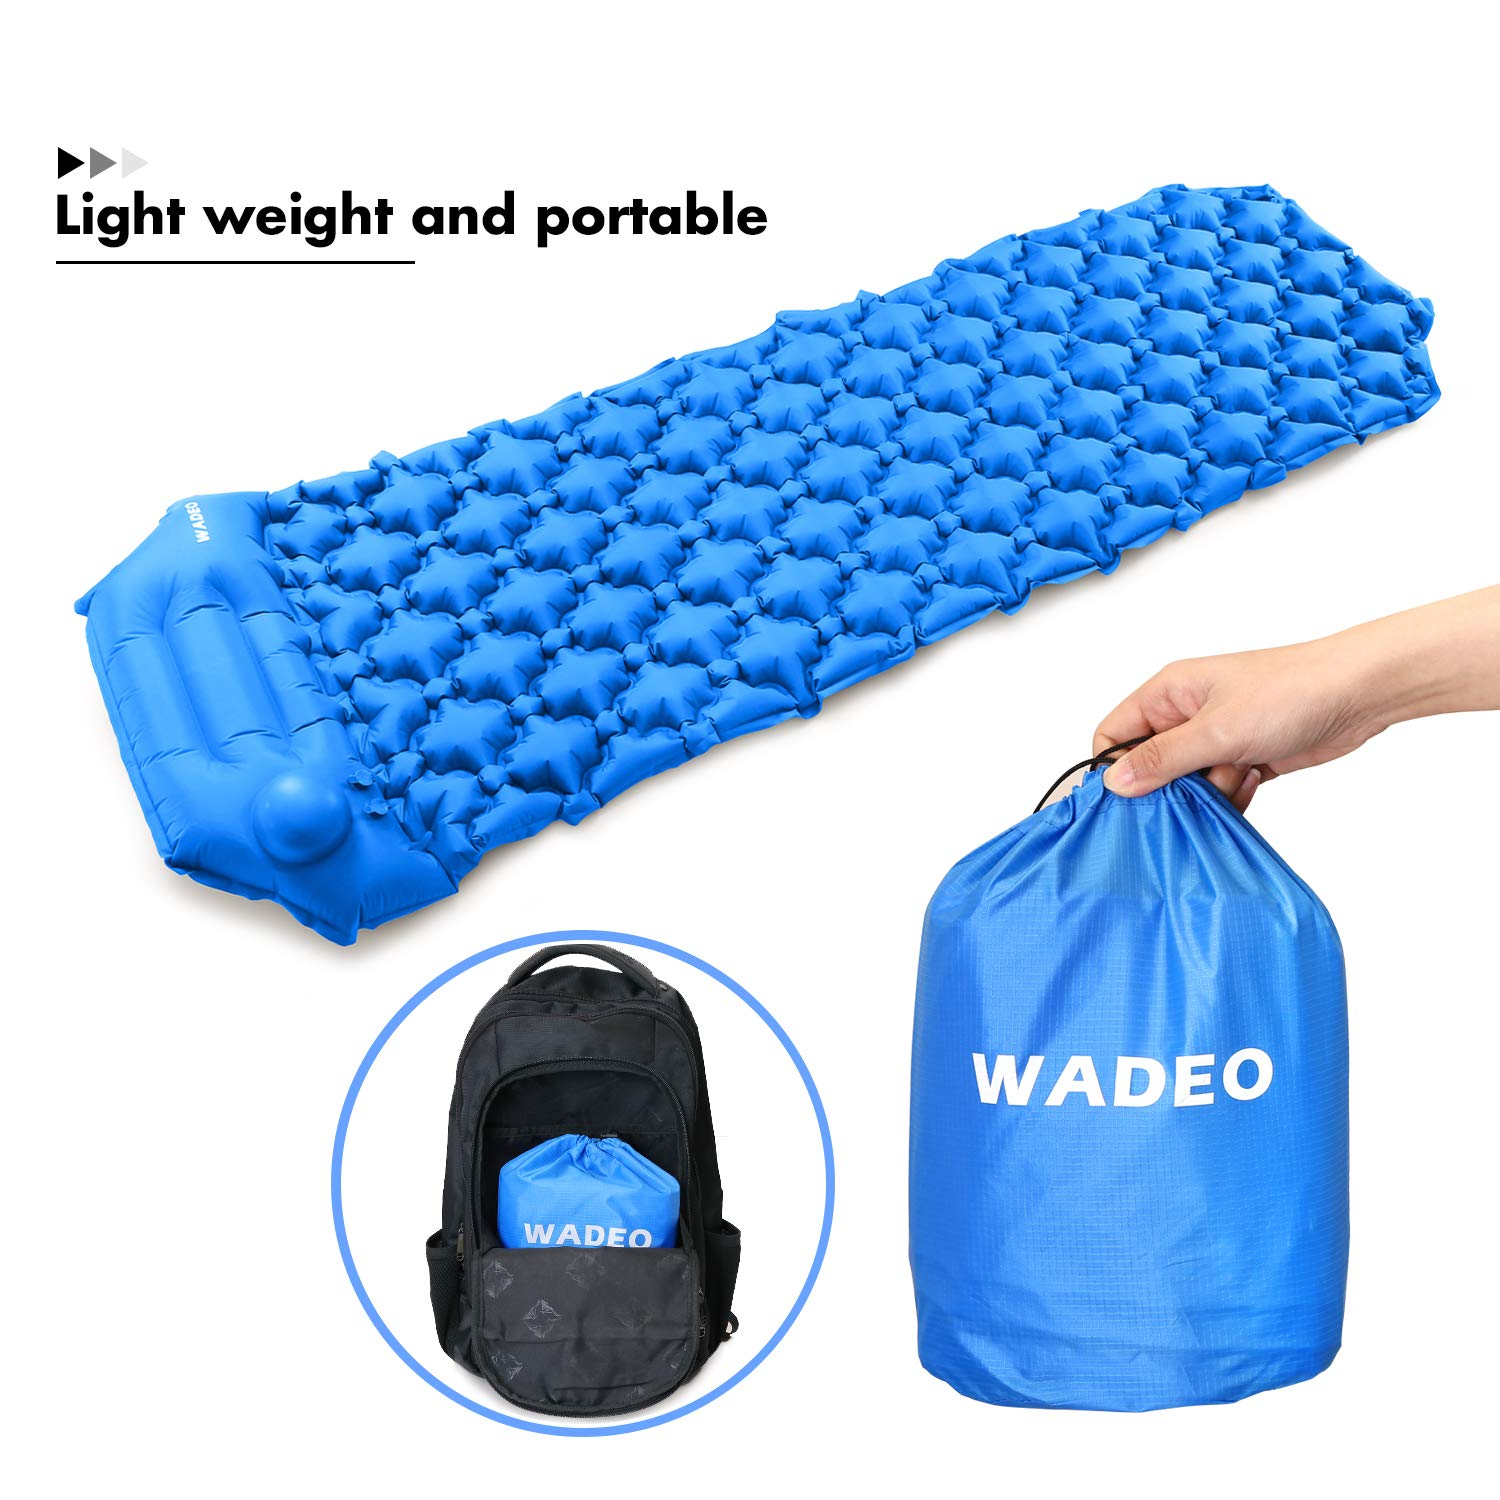 Amazon.com: WADEO Self Inflating Sleeping Pad for Camping ...